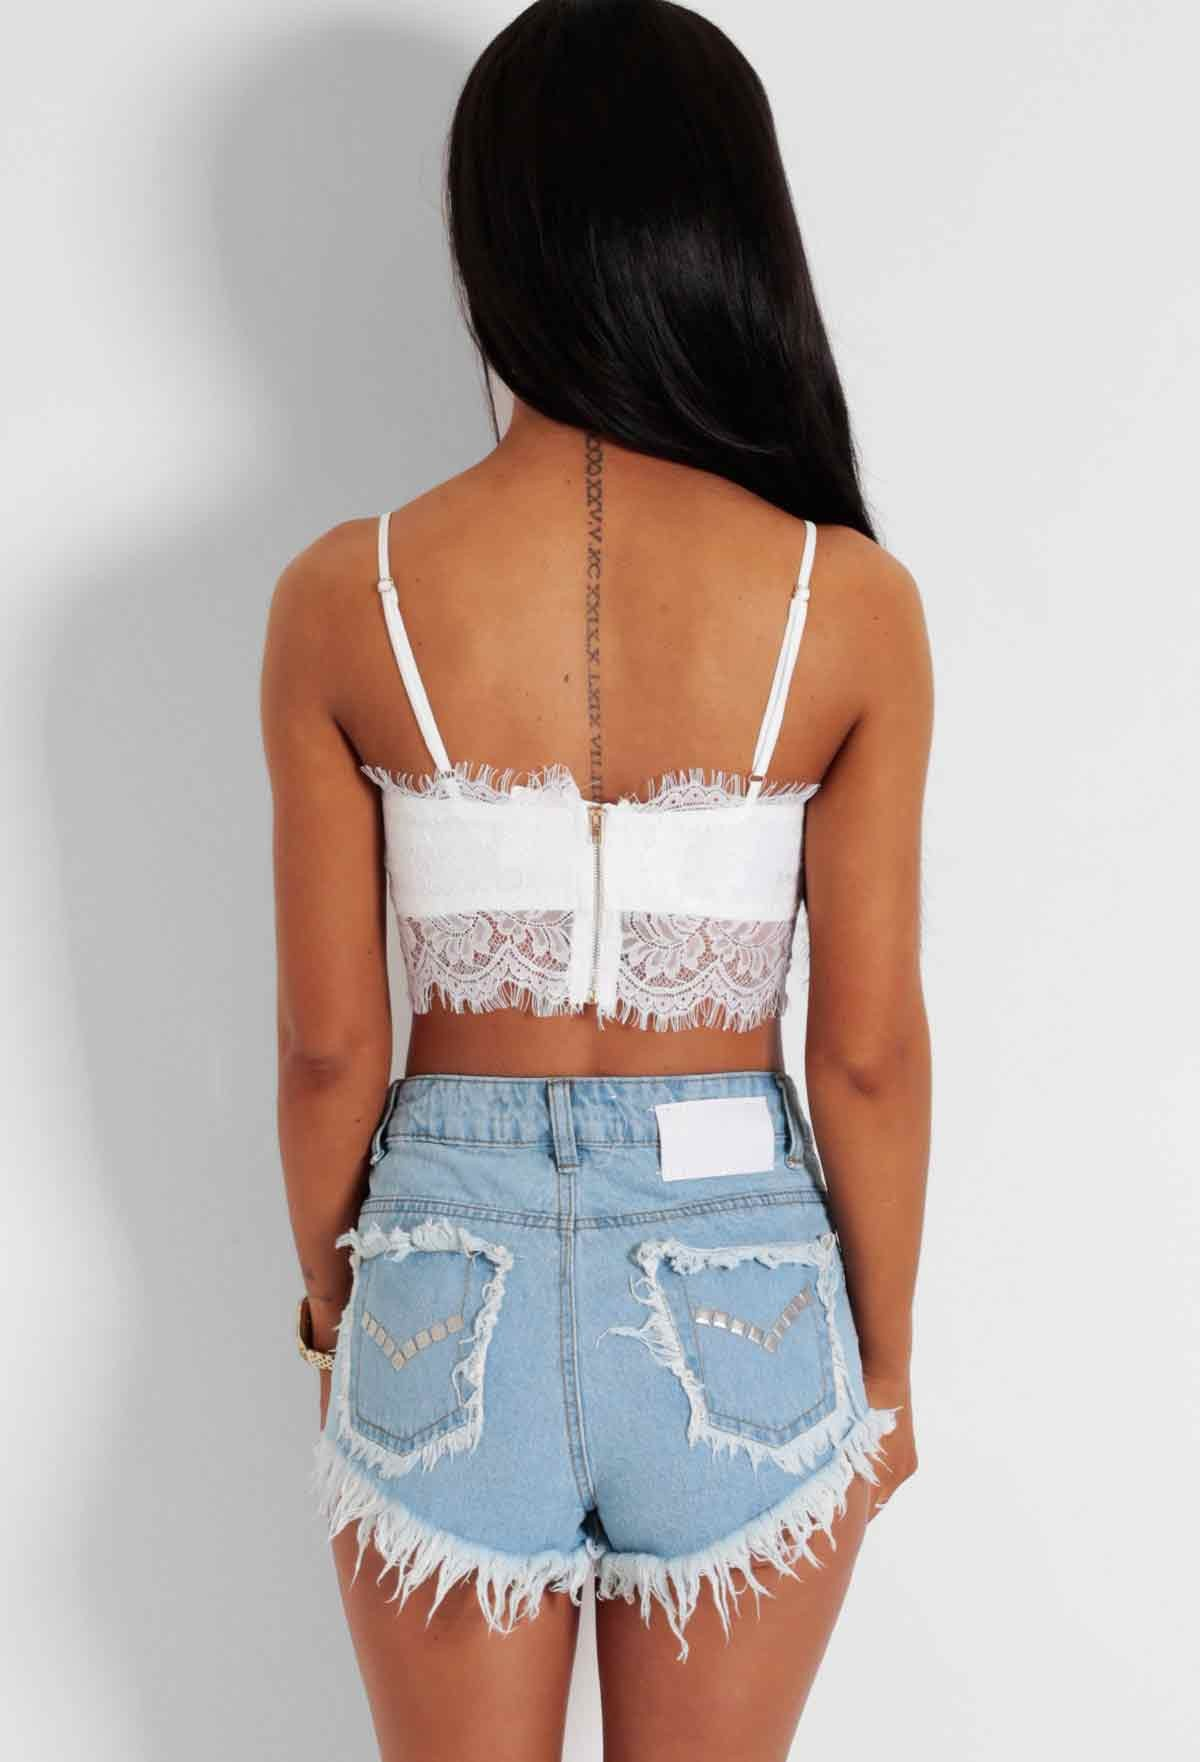 785205ded30db Ice Breaker White Lace Bralet Crop Top